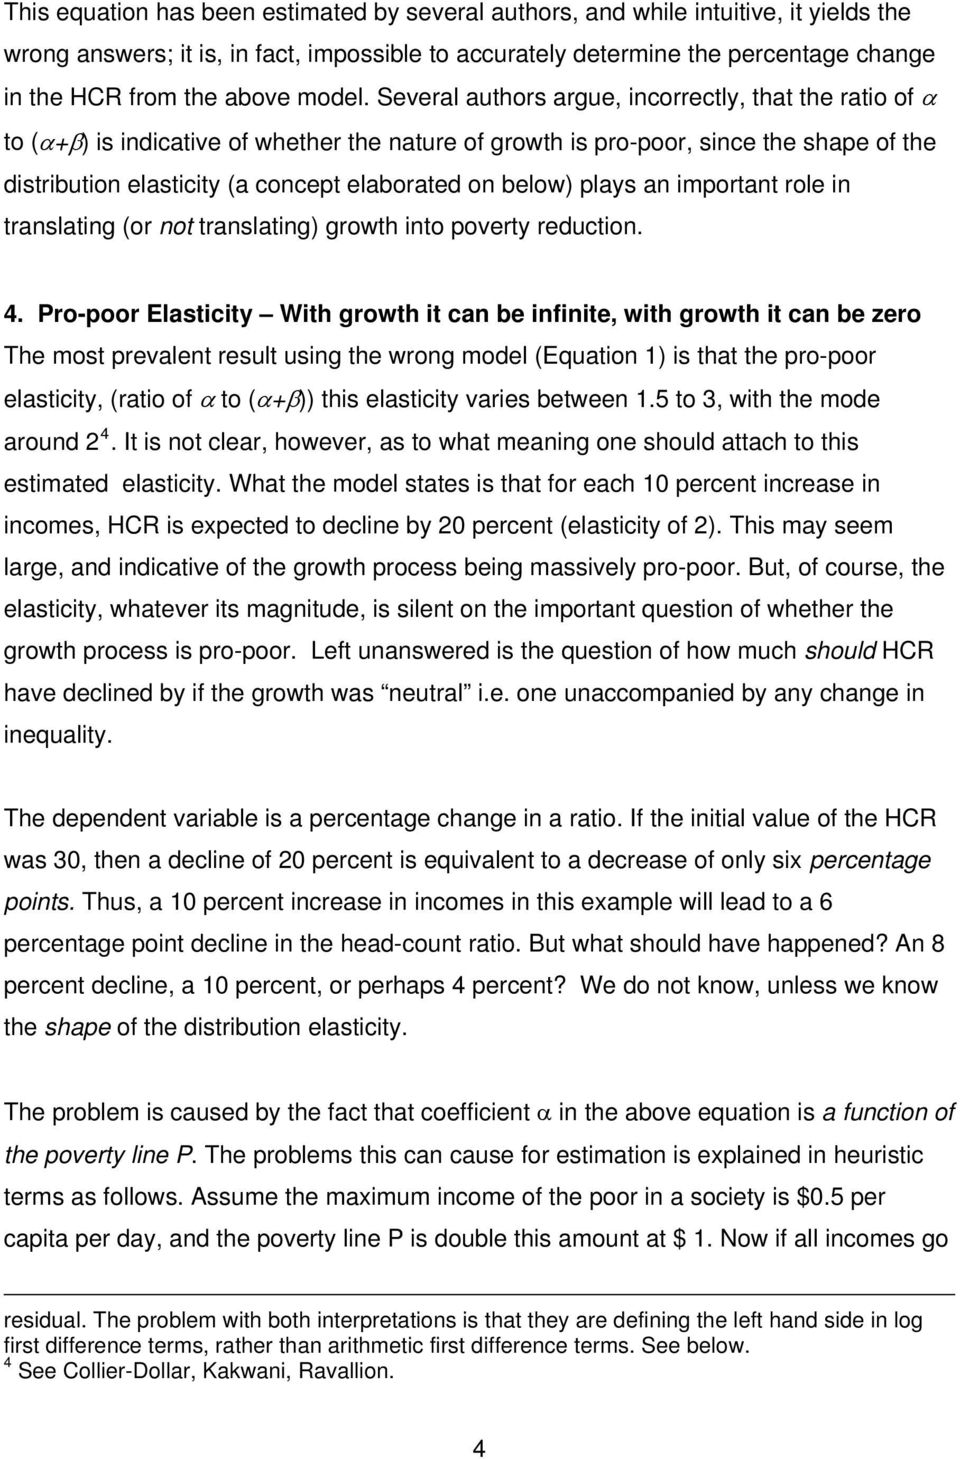 Several authors argue, incorrectly, that the ratio of α to (α+β) is indicative of whether the nature of growth is pro-poor, since the shape of the distribution elasticity (a concept elaborated on